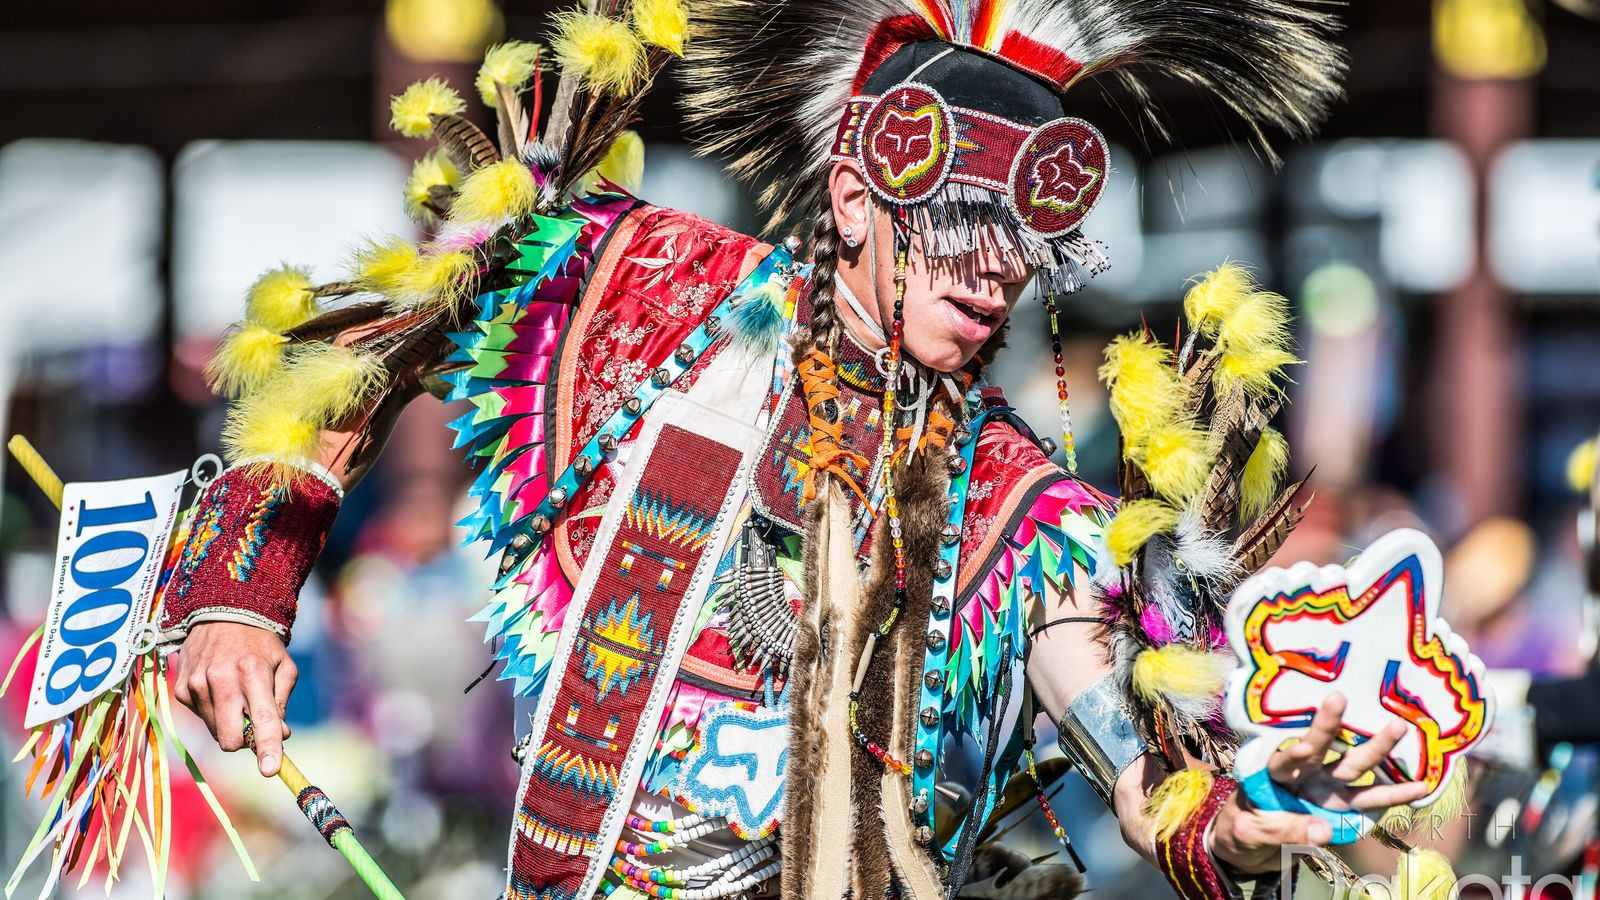 The United Tribes International Powwow in Bismark, North Dakota, known as the Home of the Champions.